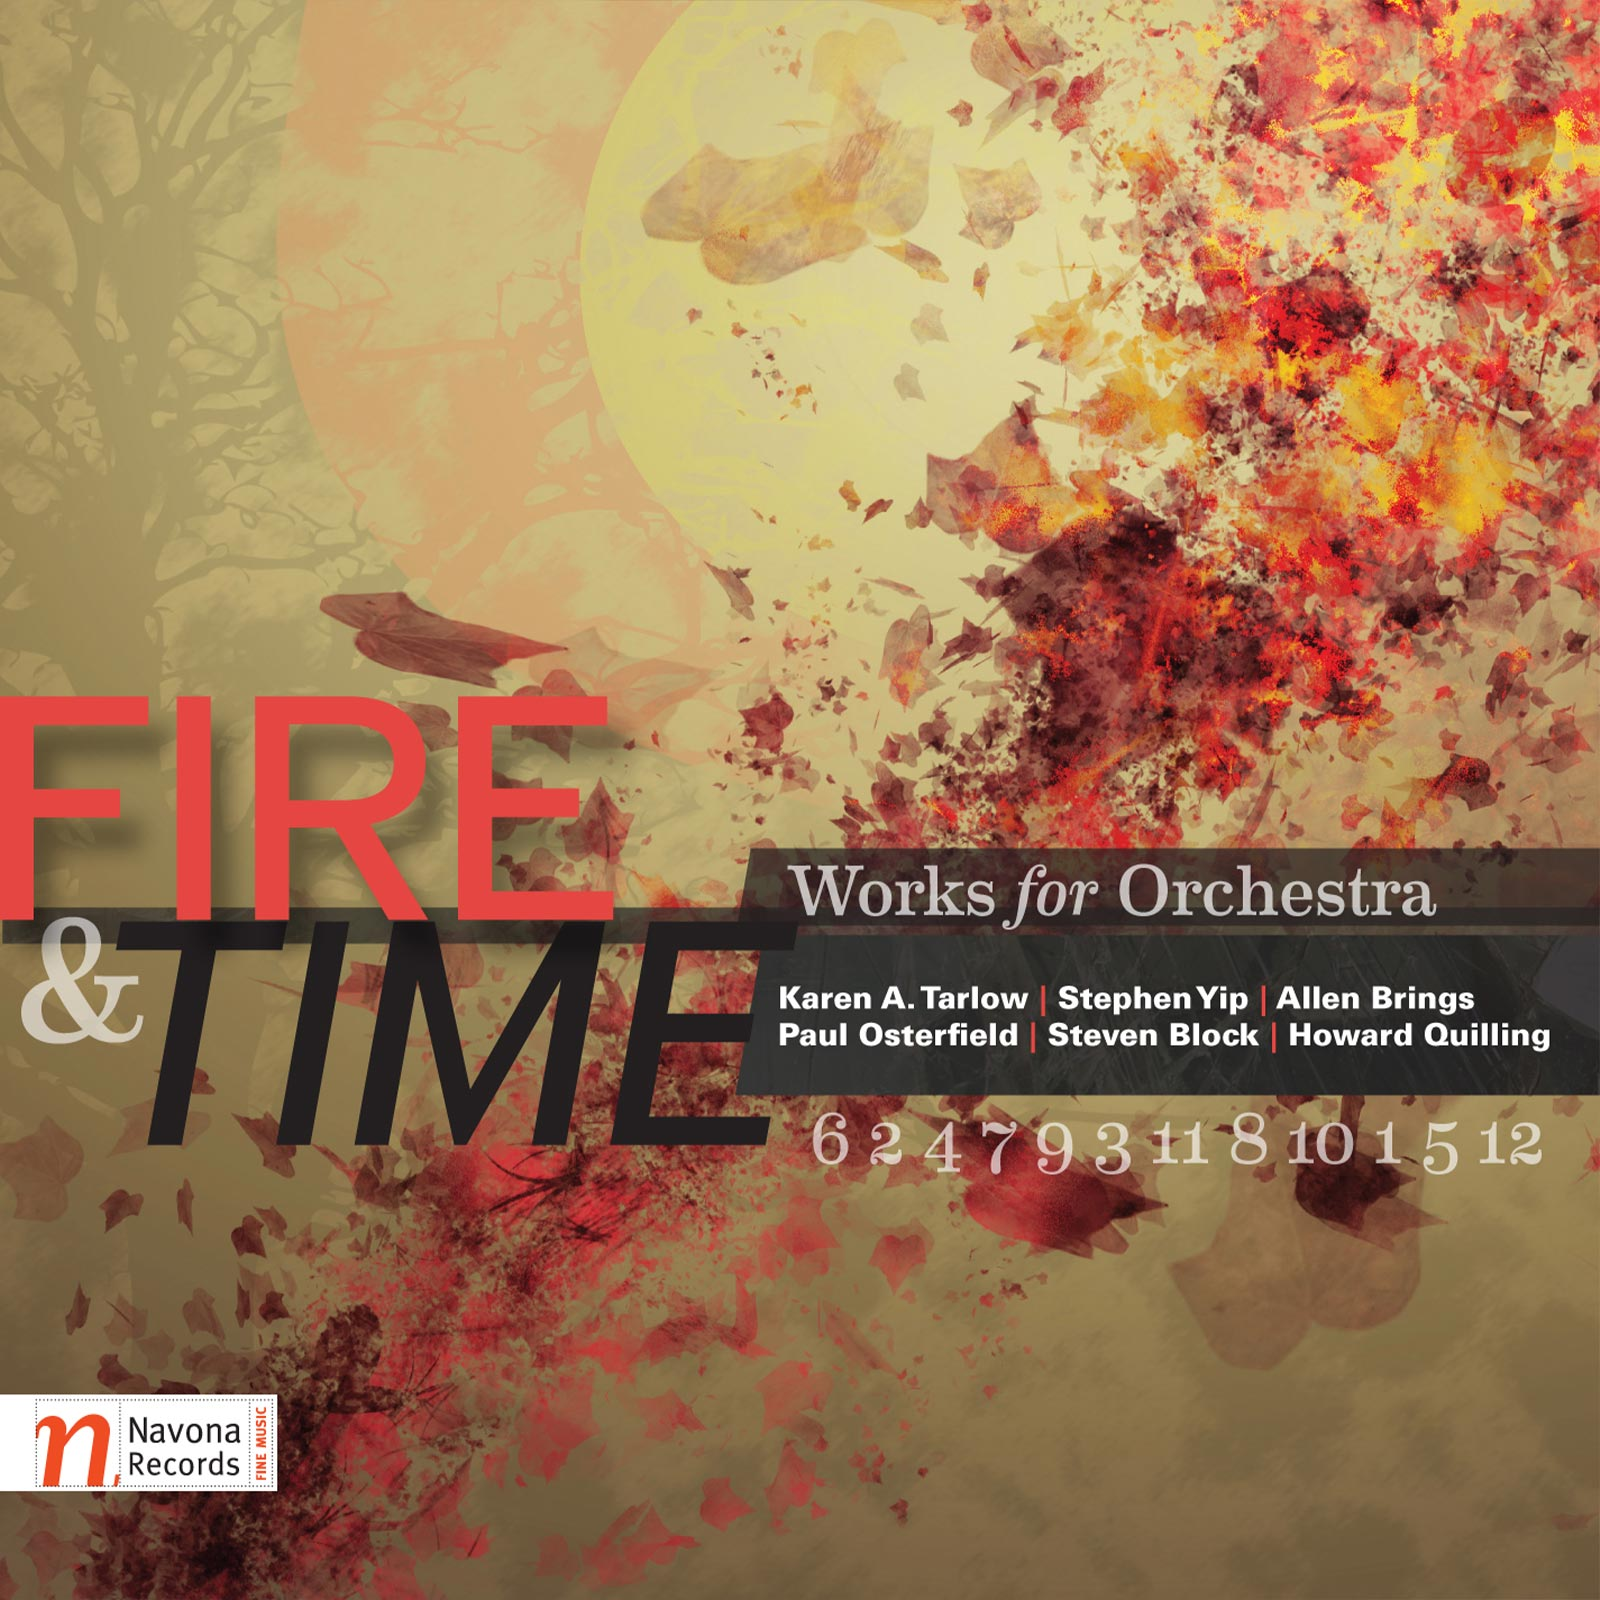 Fire & Time